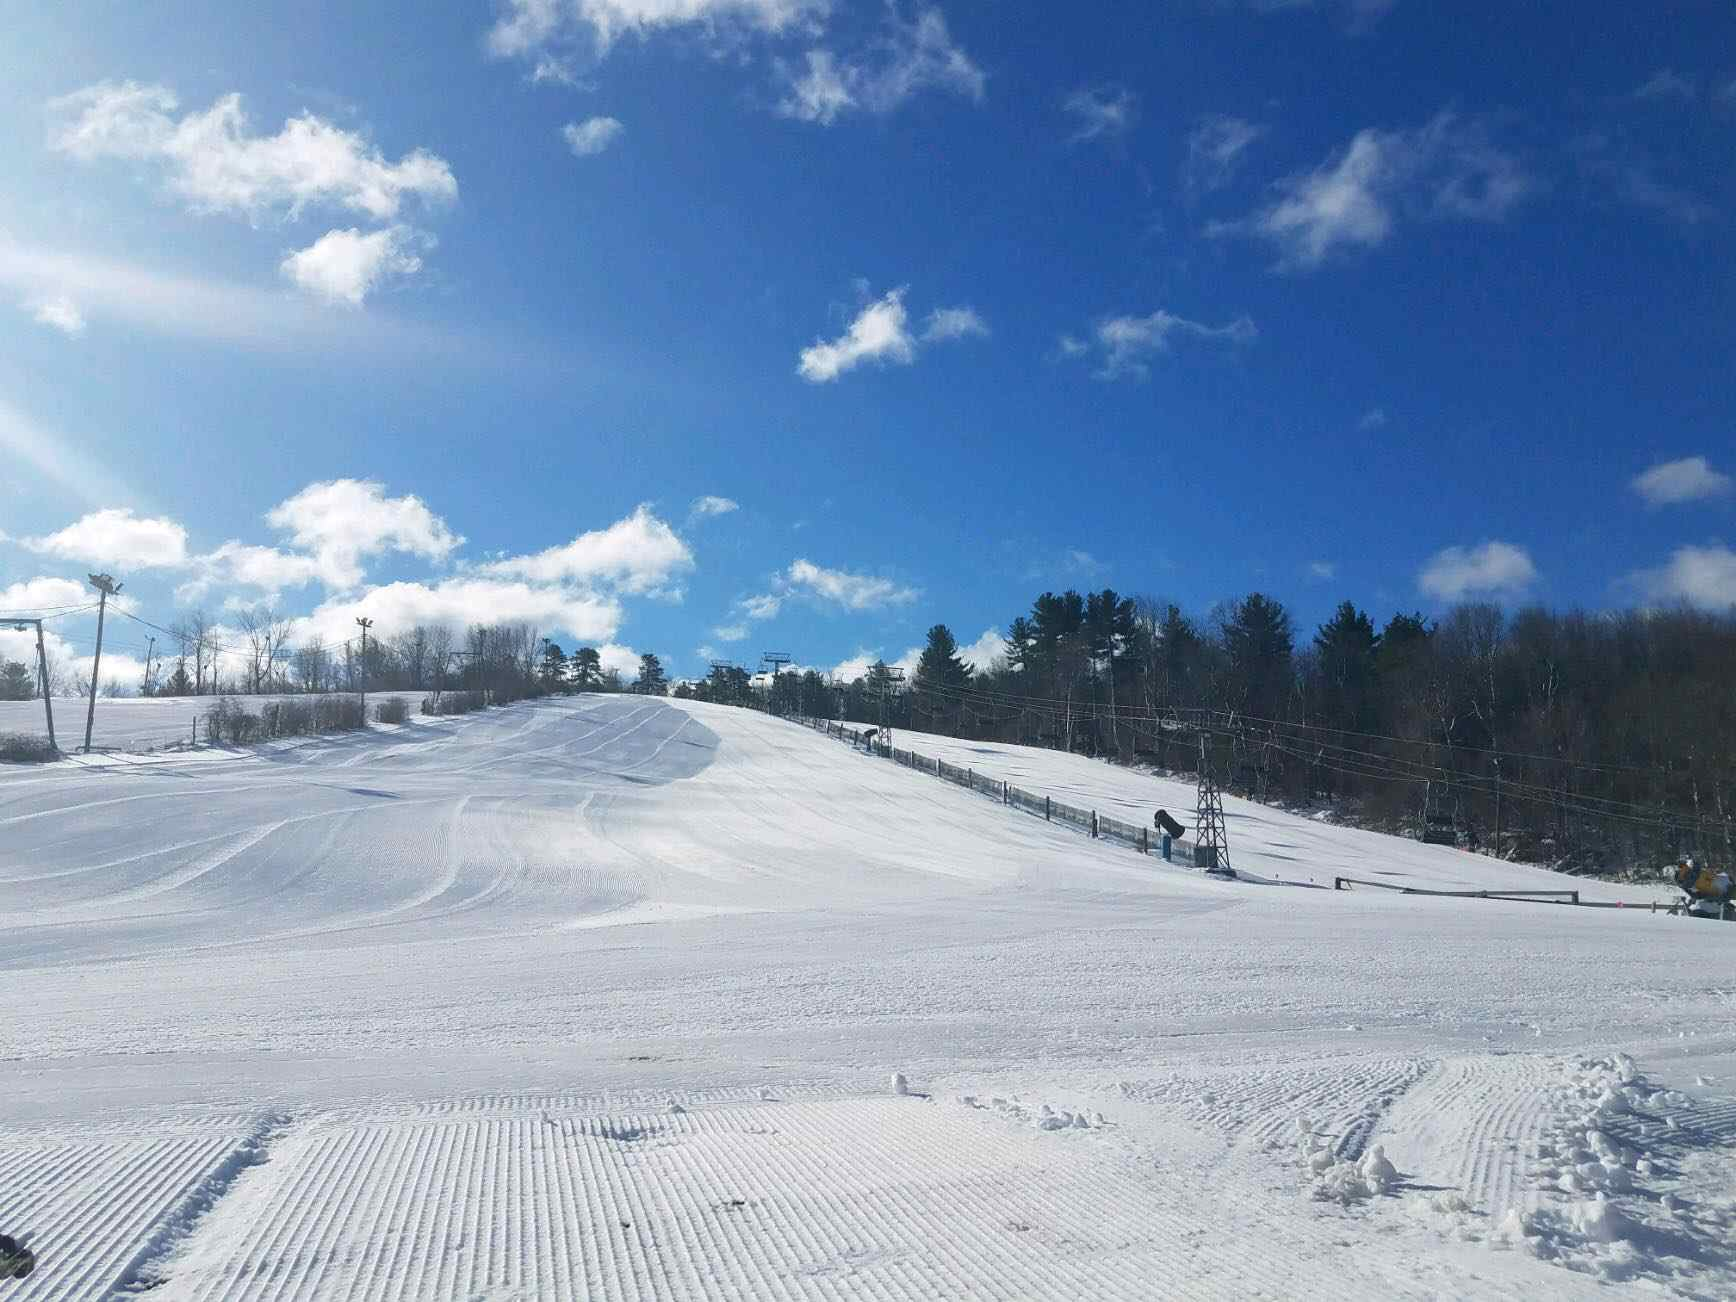 tubing in new england is a chilly thrill